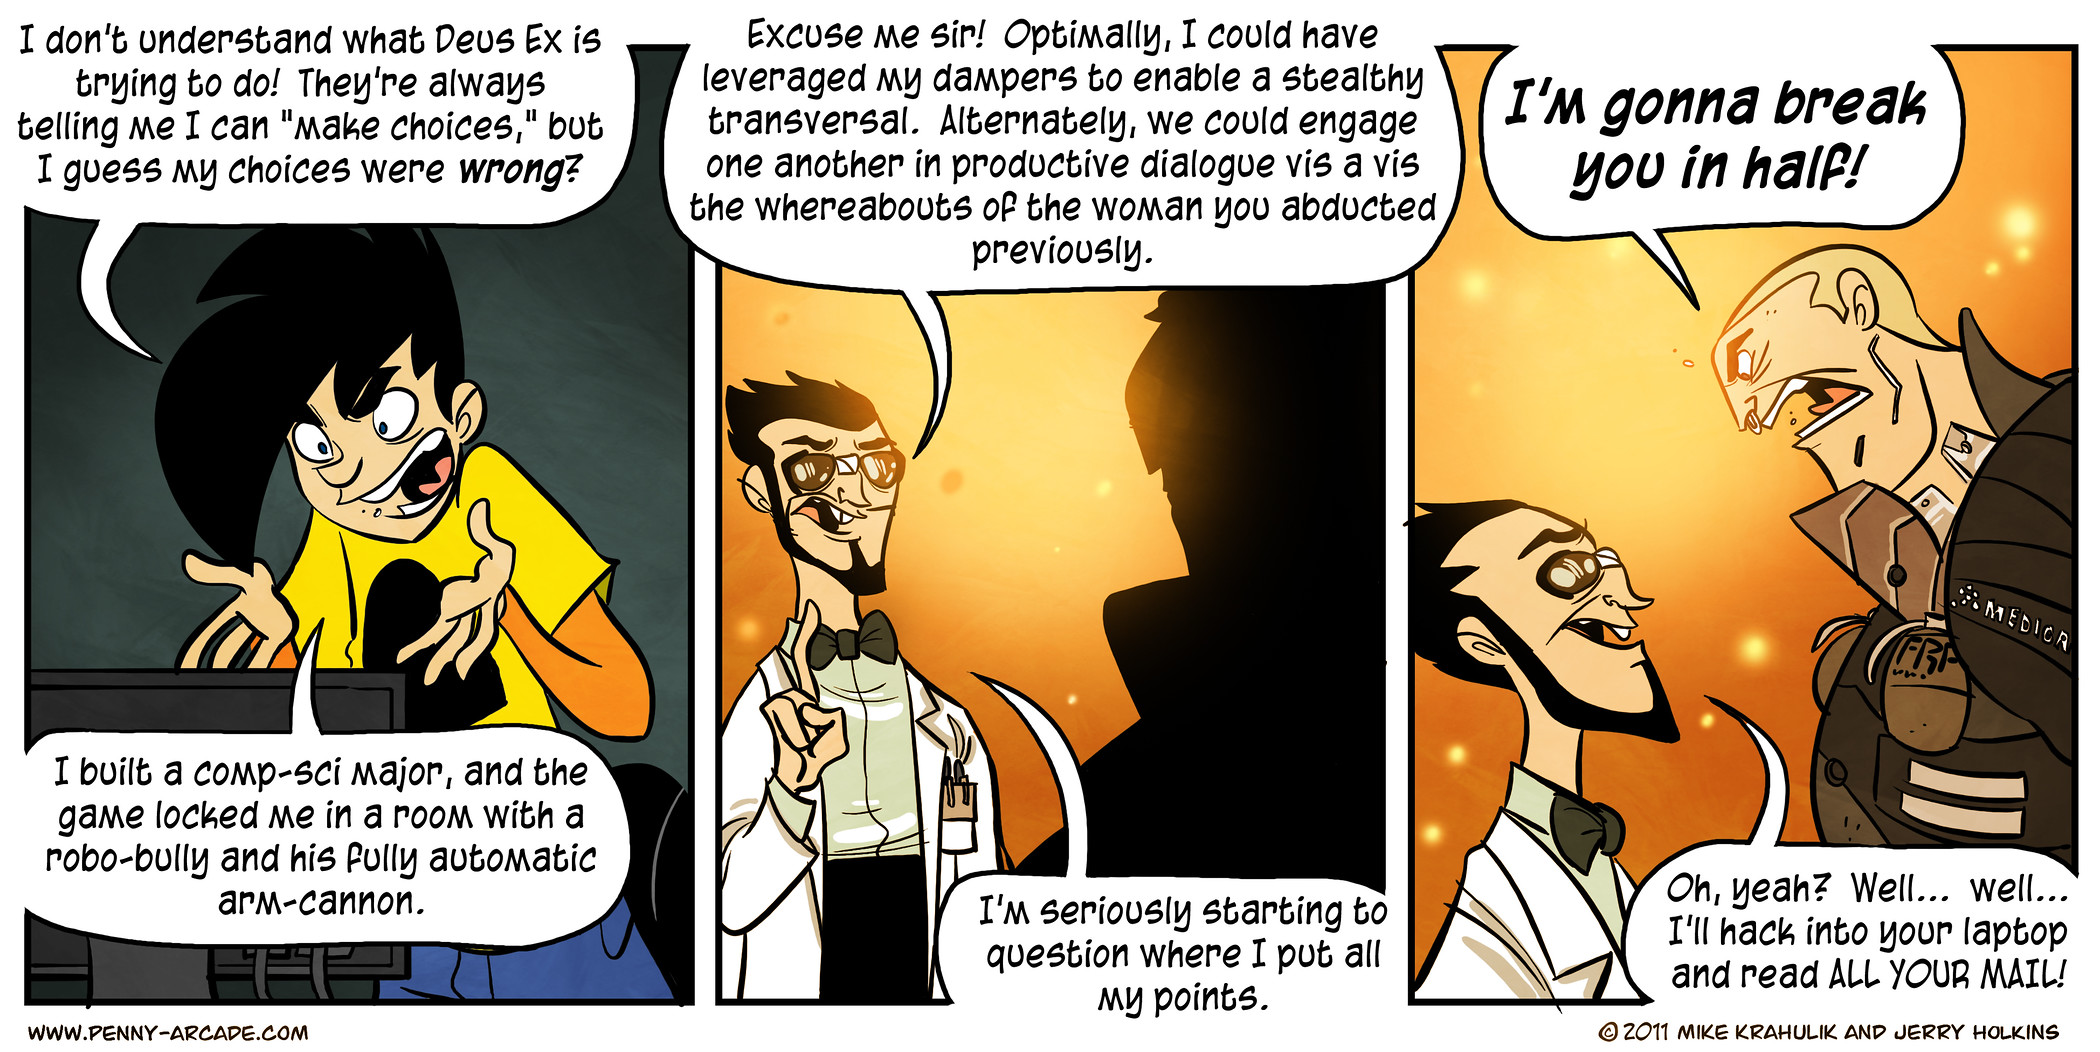 Penny Arcade comic about how Deus Ex: Revolution lets you build non-combat characters and then forces you into direct combat situations.